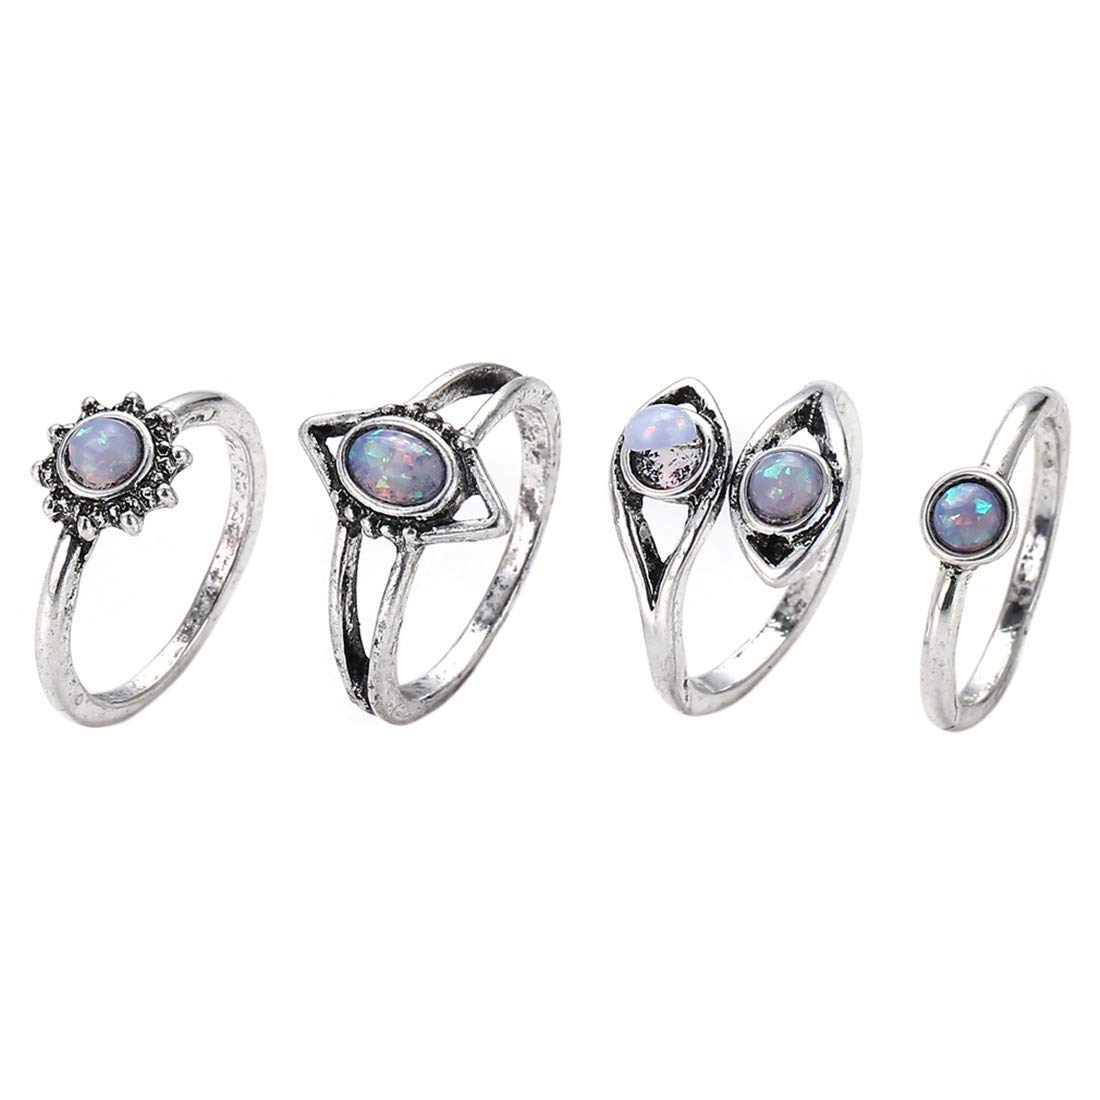 UINKE 4 Pieces Charm Opal Stone Flower Rings Bohemian Stackable Ring Set Gift for Women